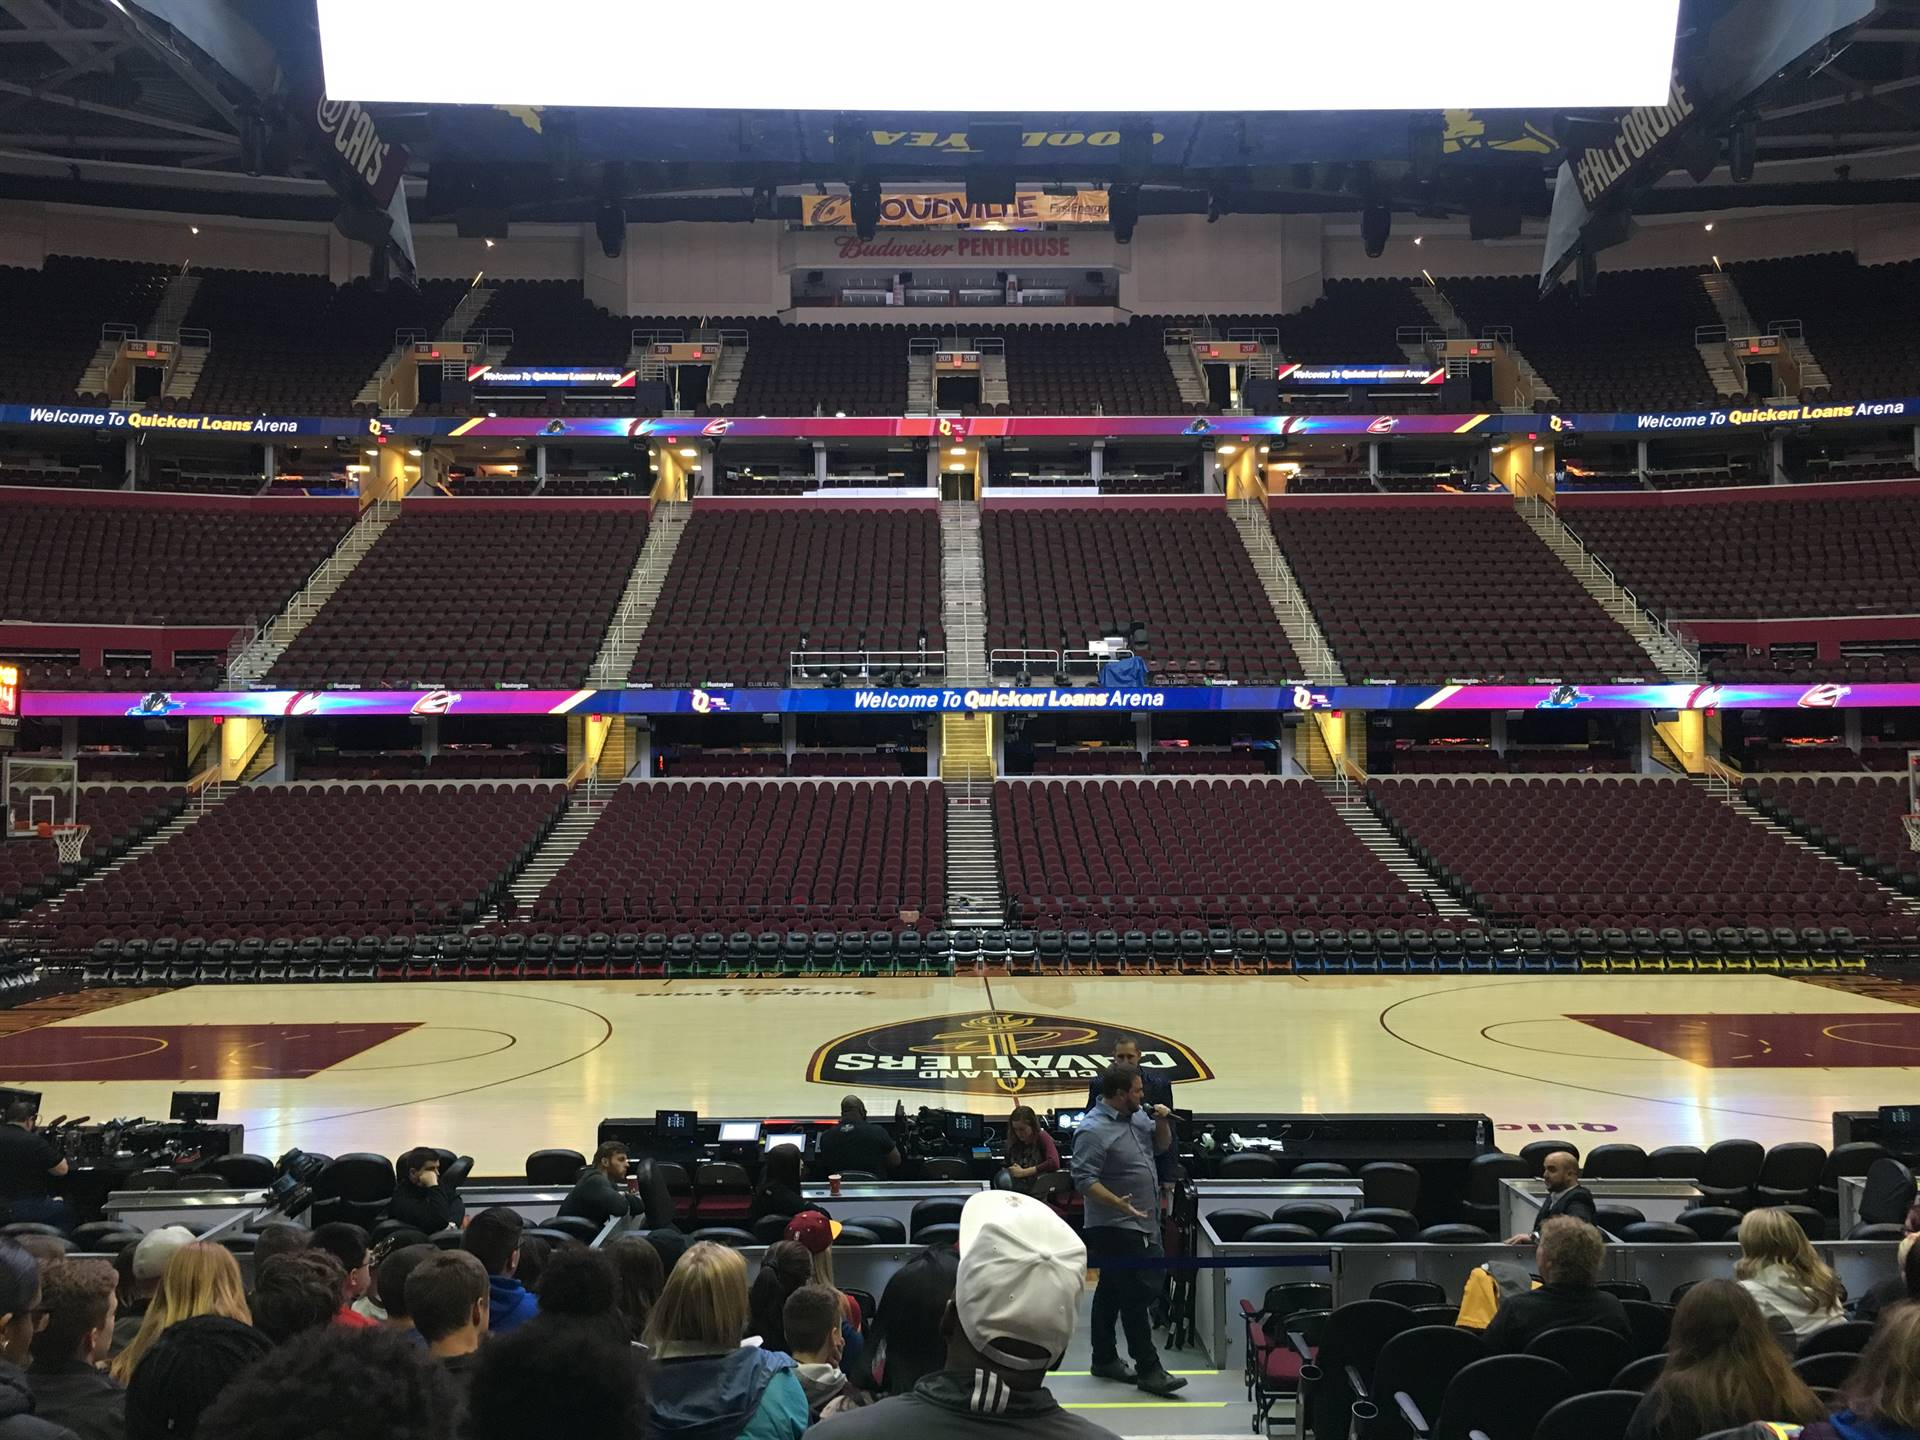 CAVS Game - April 2018